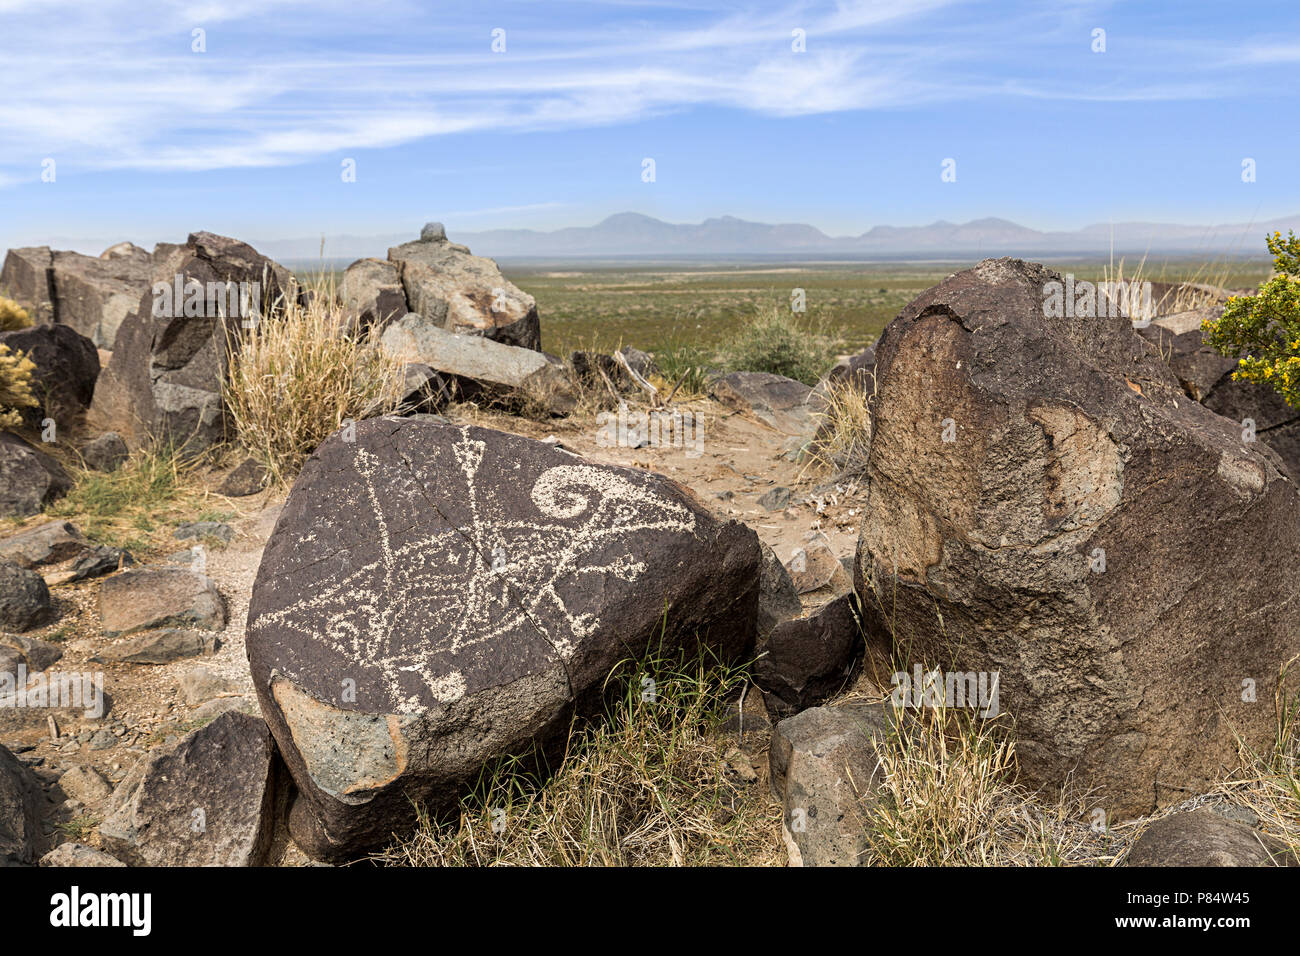 Jornada Mogollon rock art at Three Rivers Petroglyph Site, New Mexico, USA - Stock Image